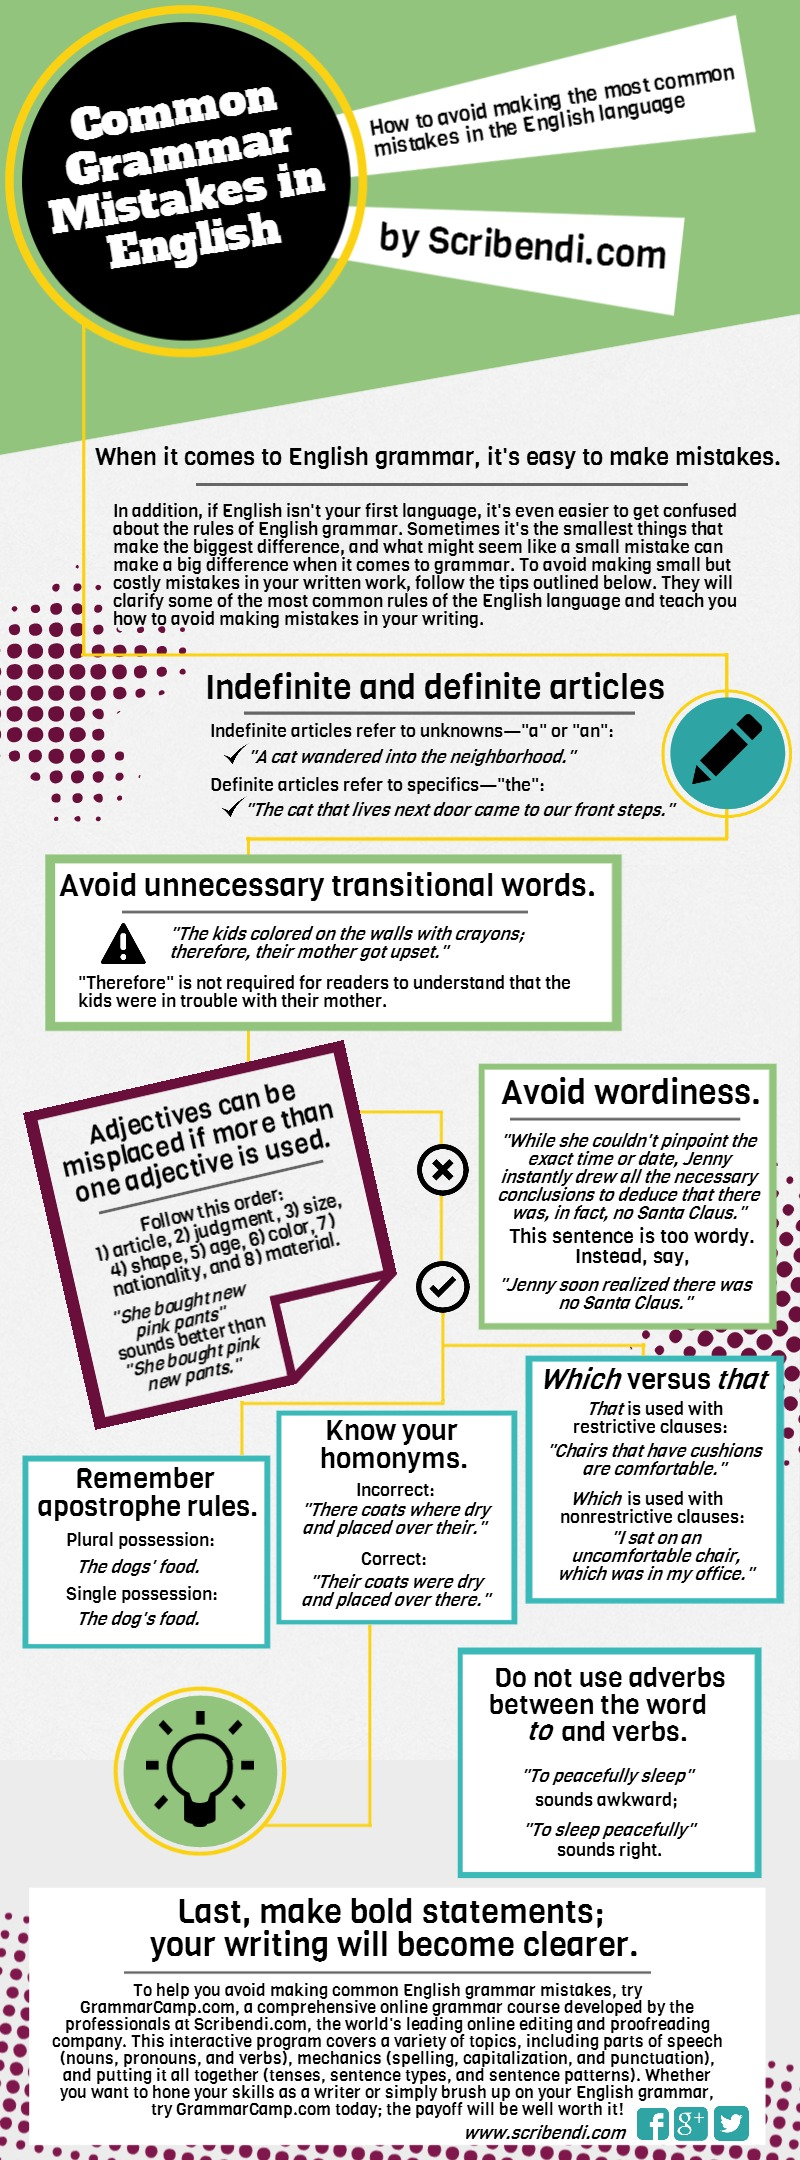 Scribendi.com's infographic about common grammar mistakes in English.